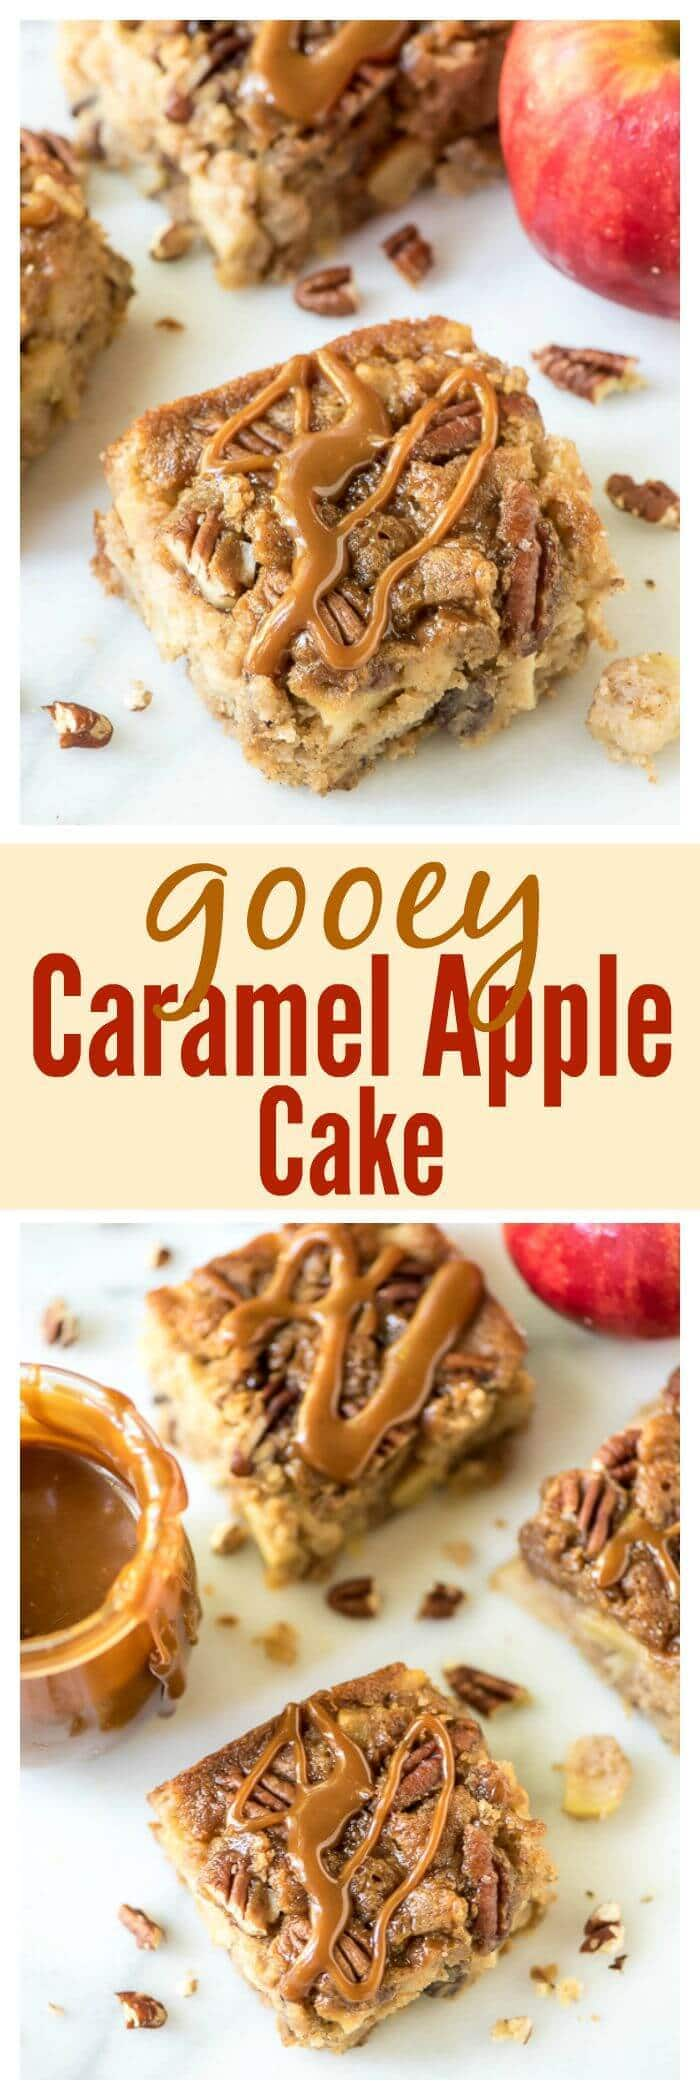 Gooey Caramel Apple Cake. Like a cross between gooey butter cake and a caramel apple!